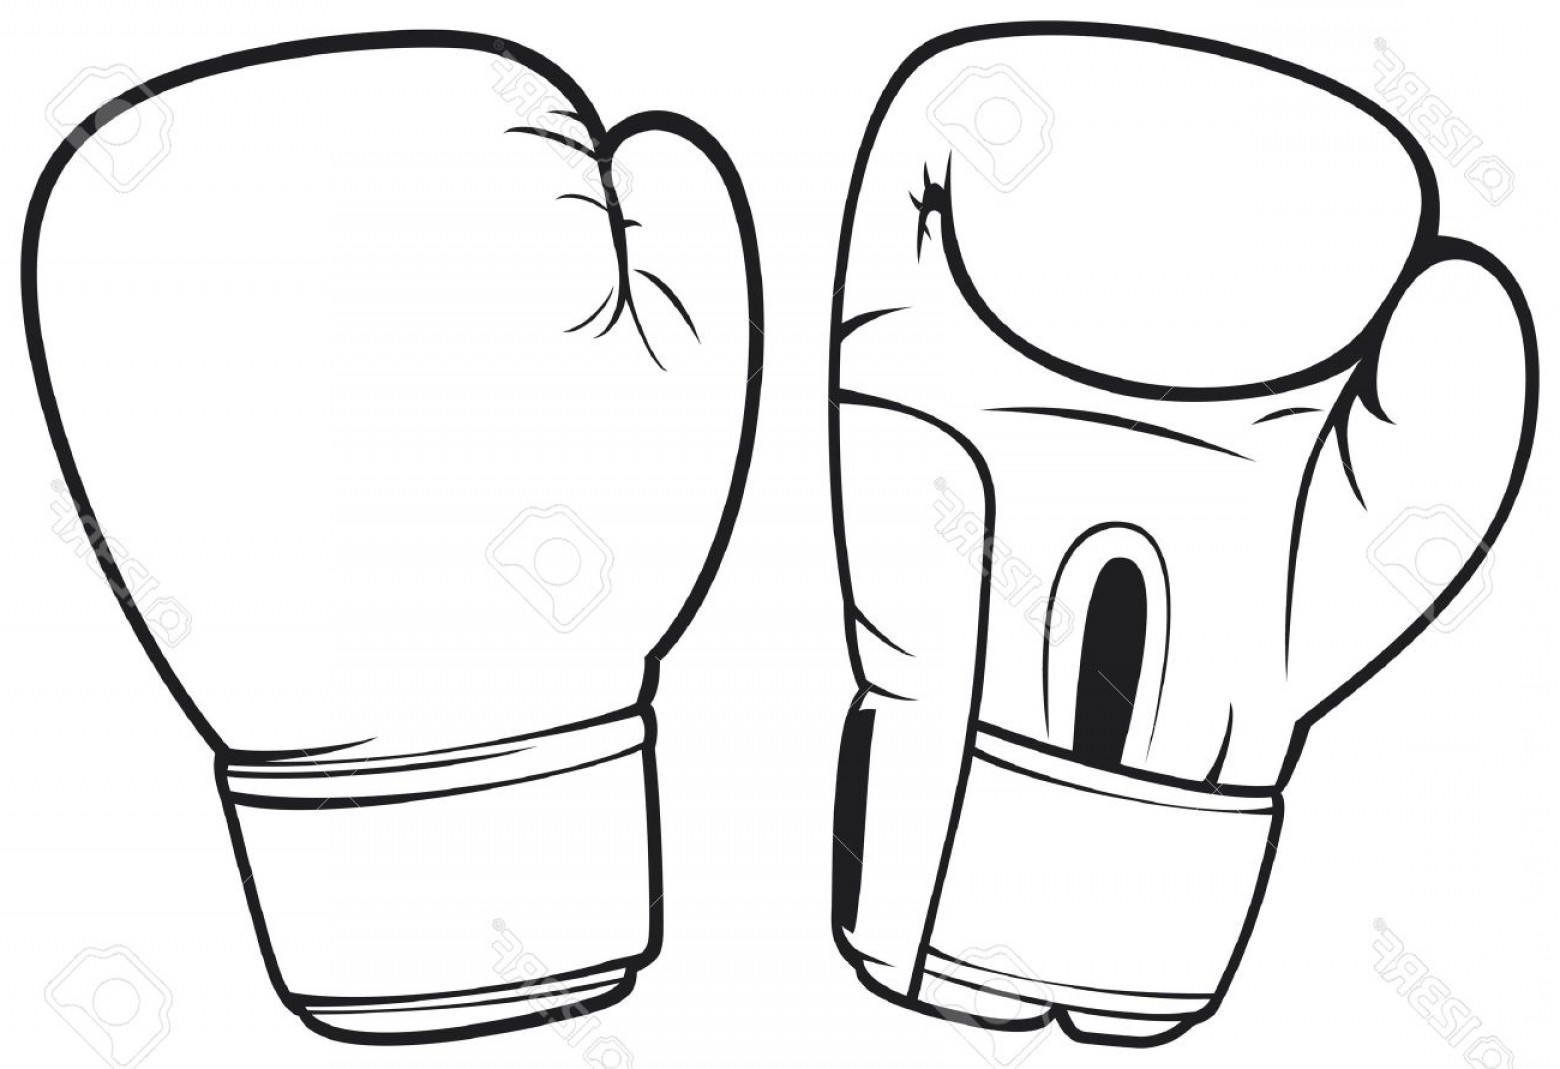 Boxing Gloves Clipart Black And White.